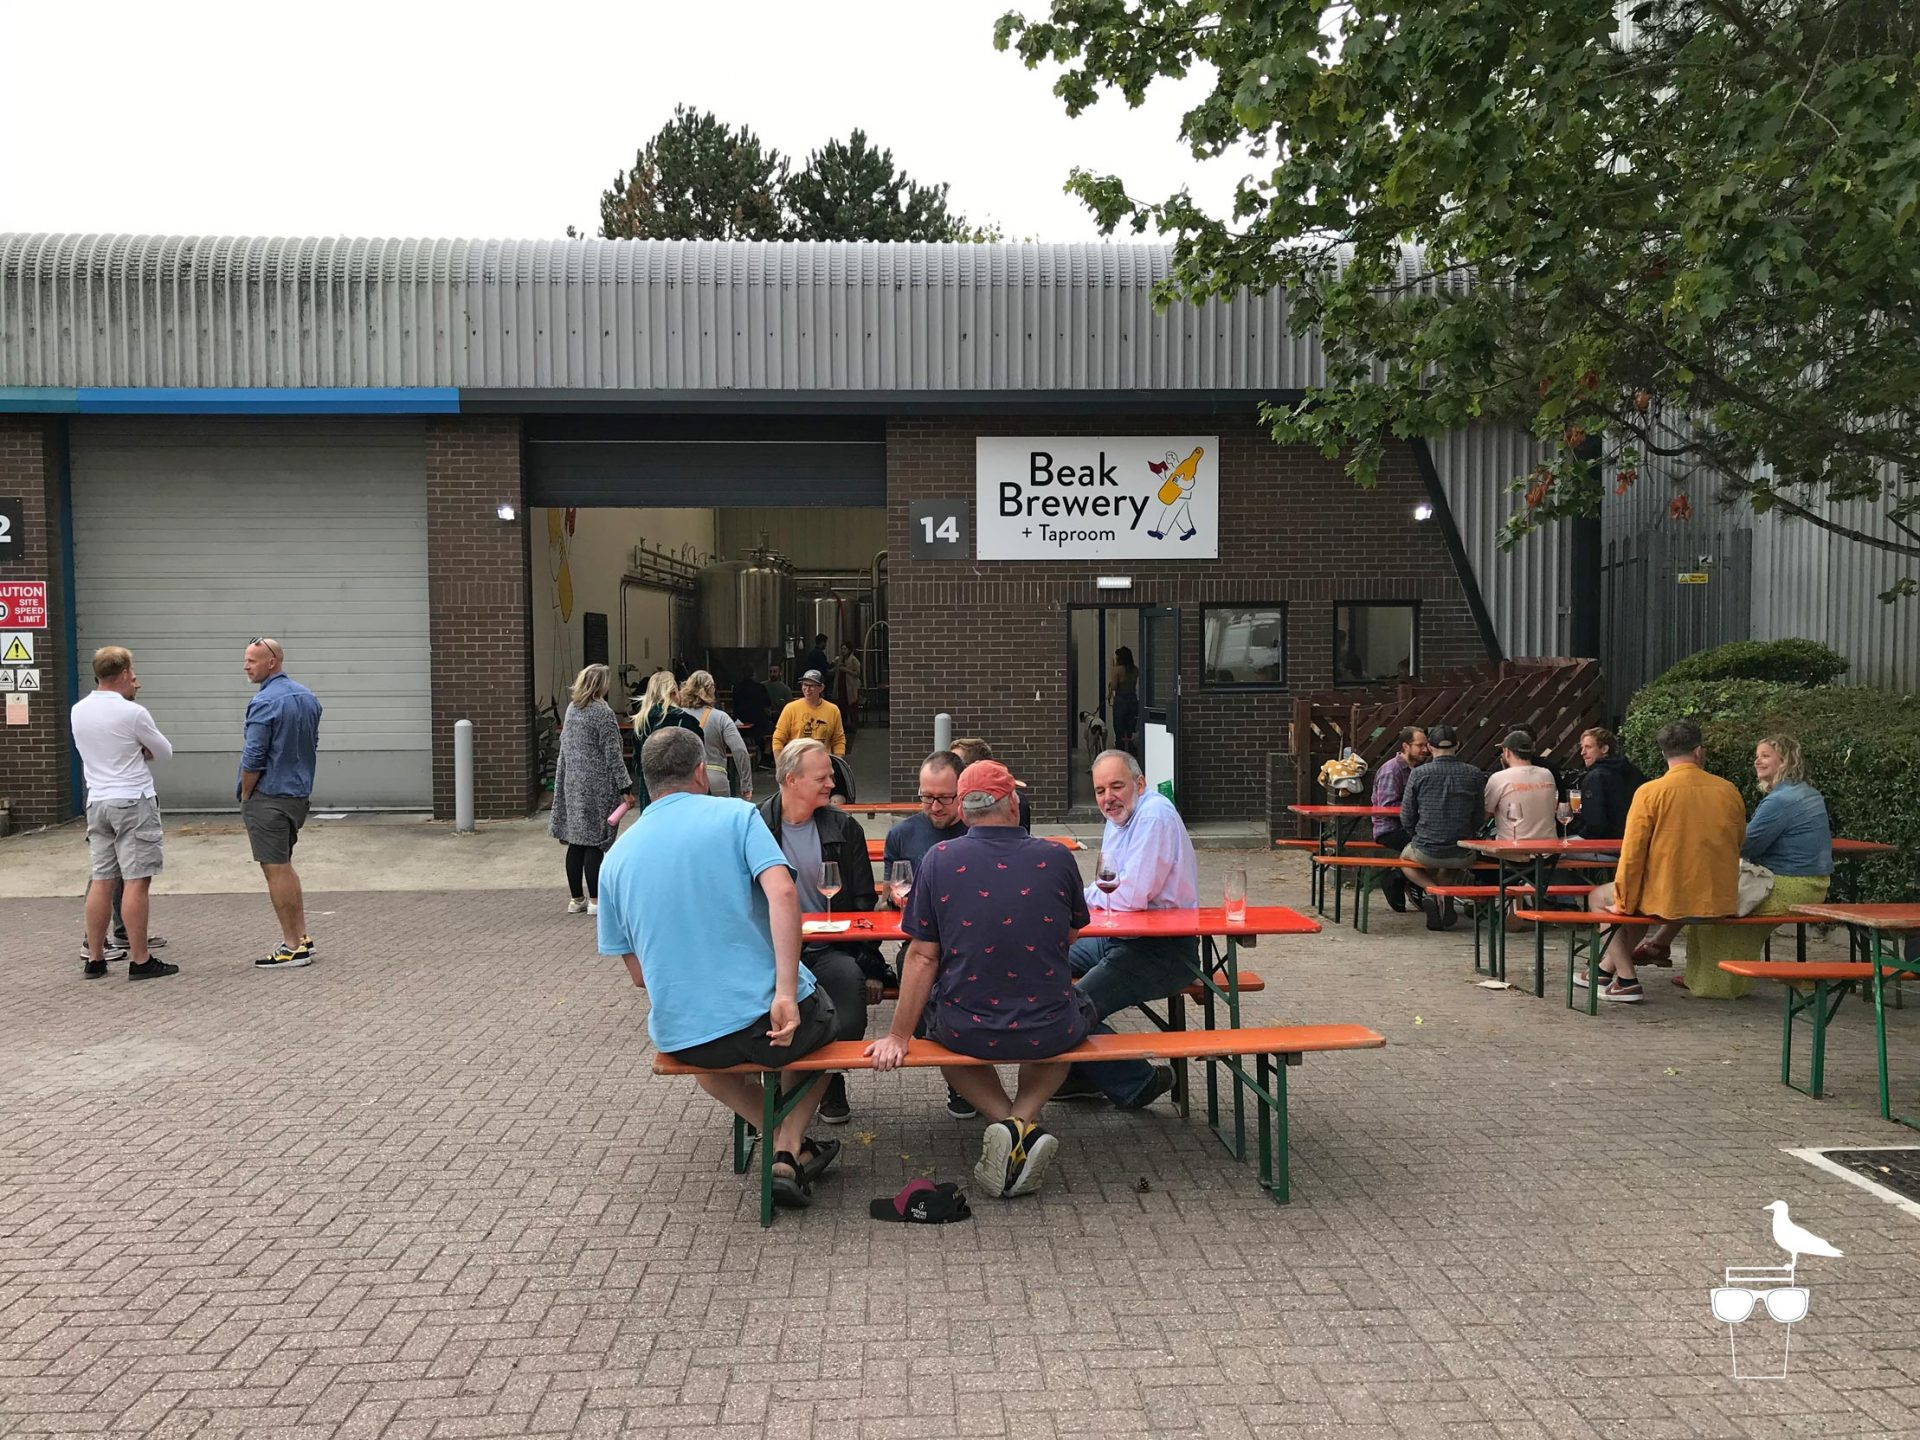 beak-brewery-lewes-outside